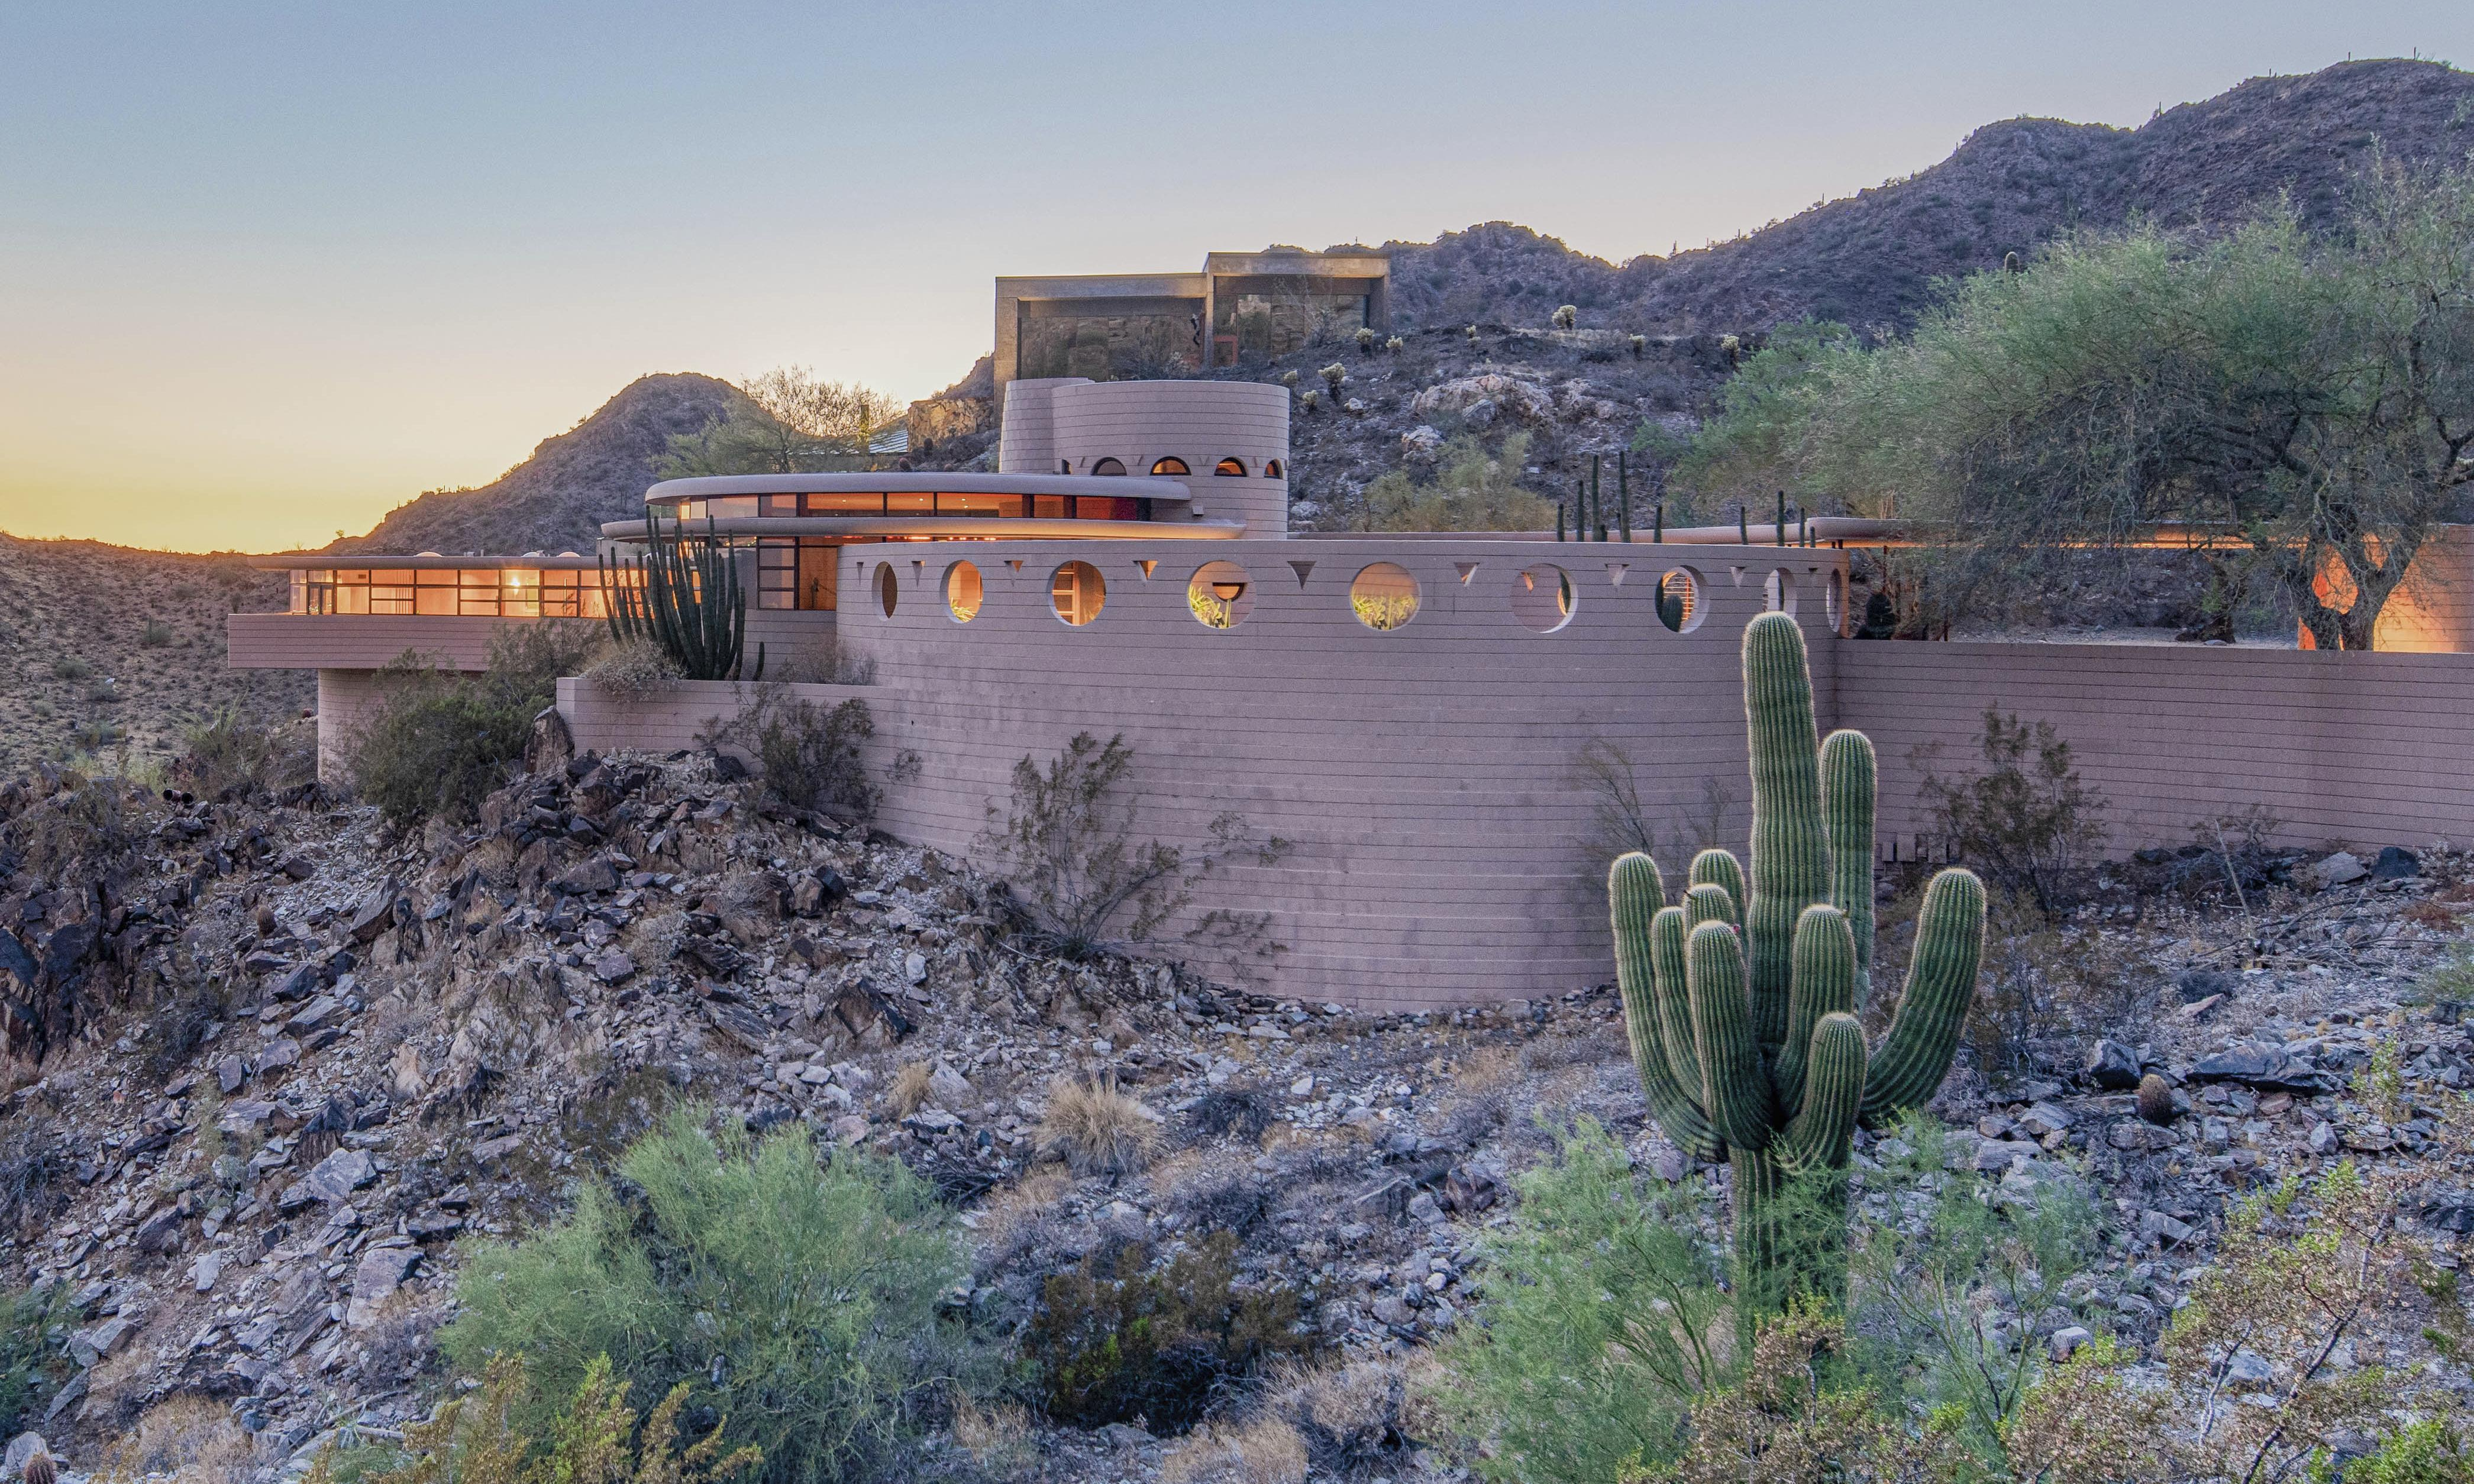 Arizona home designed by Frank Lloyd Wright before his death sells for $1.7m